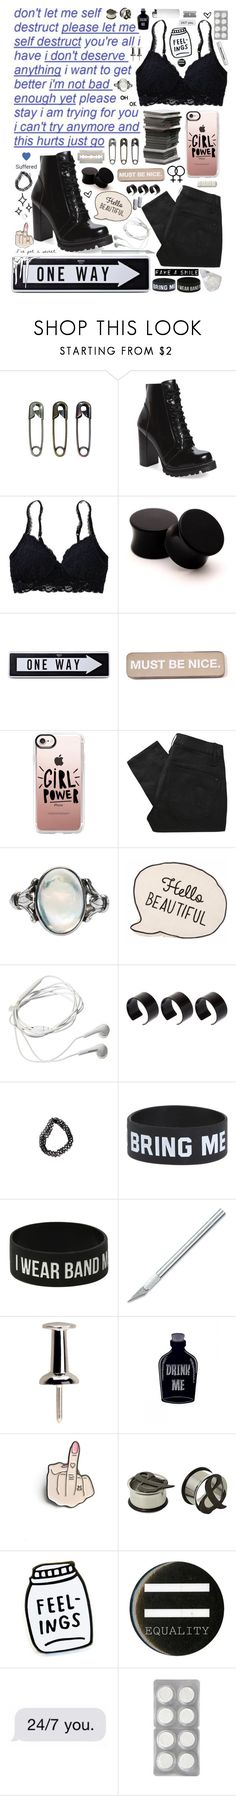 """""""broken record"""" by falselycathartic ❤ liked on Polyvore featuring Tim Holtz, Jeffrey Campbell, Aerie, Moschino, RIPNDIP, Casetify, Marc by Marc Jacobs, Samsung, ASOS and Hot Topic"""